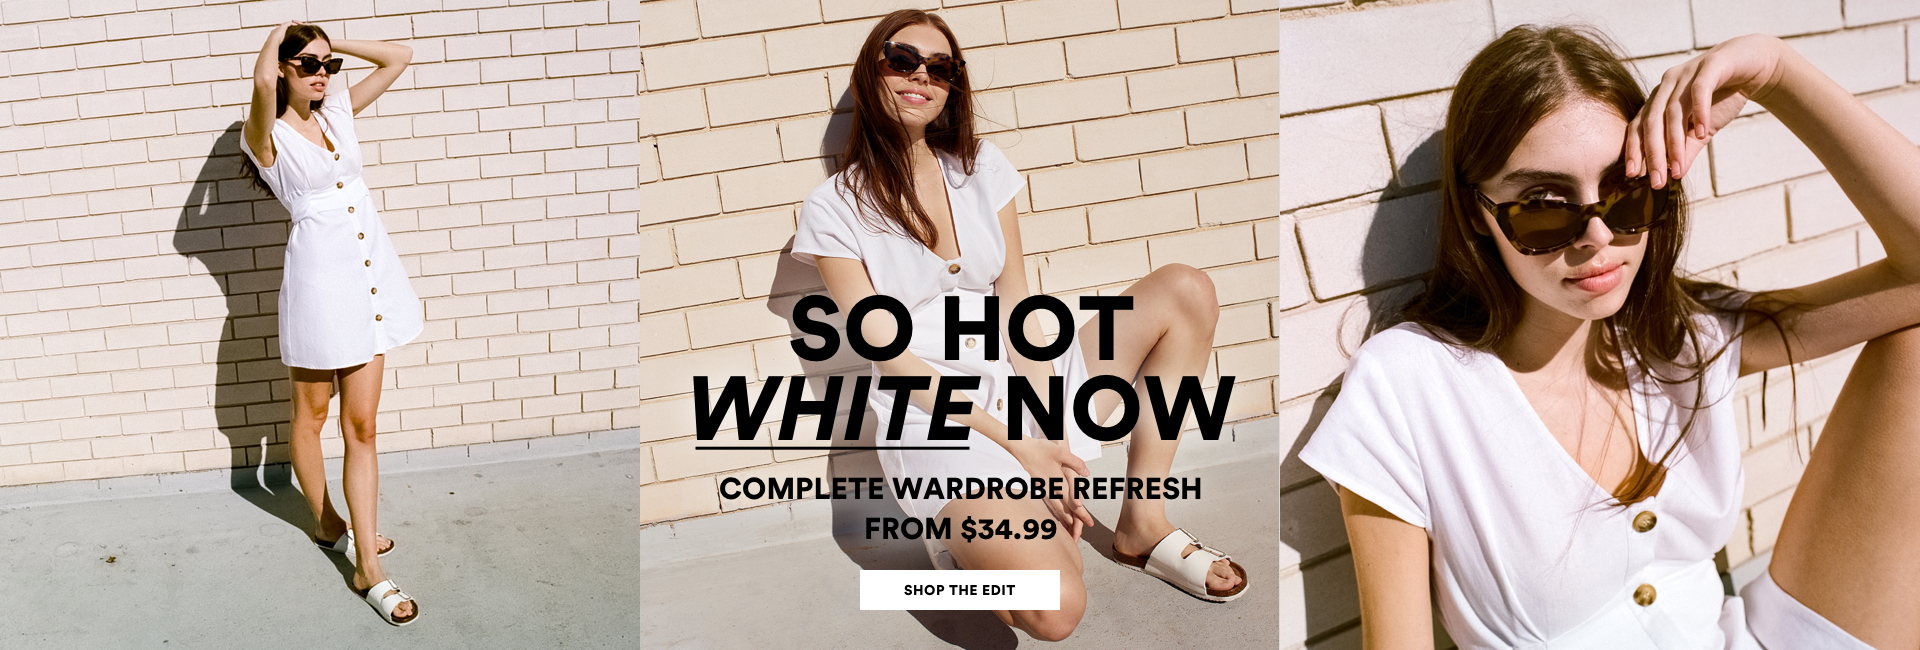 a3e04fd6d738a So Hot White Now. Complete Wardrobe Refresh from $34.99. Click to Shop the  Edit